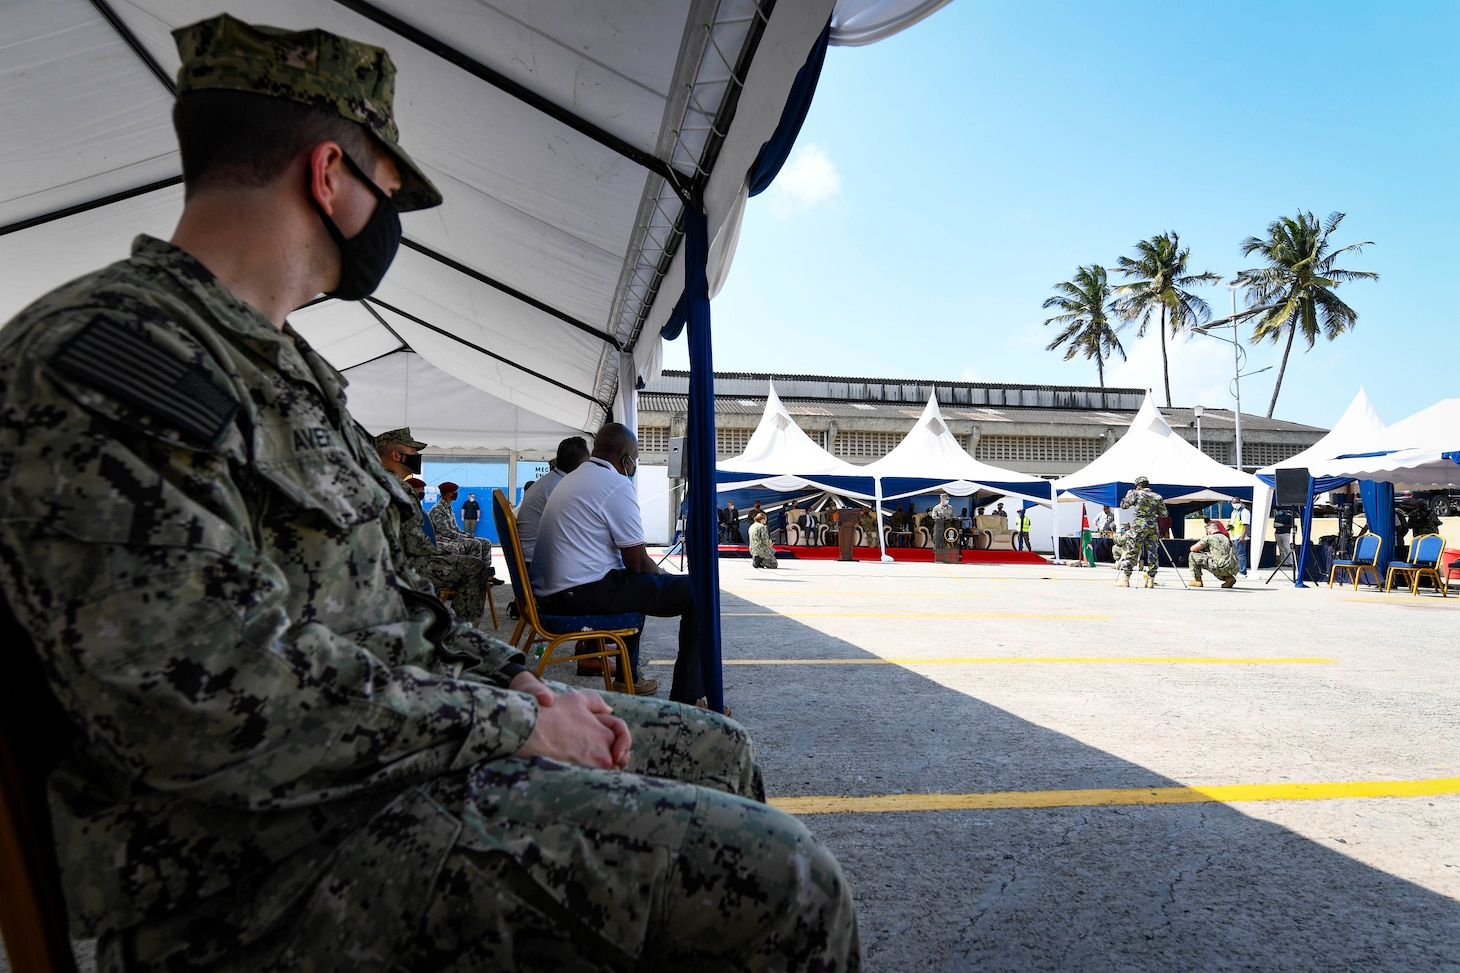 (July 26, 2021) Rear Adm. Michael Curran, Director, Readiness and Logistics, U.S. Naval Forces Europe-Africa, delivers remarks during the opening ceremony of exercise Cutlass Express 2021 held at the Bandari Maritime Academy in Mombasa, Kenya, July 26, 2021. Cutlass Express is designed to improve regional cooperation, maritime domain awareness and information sharing practices to increase capabilities between the U.S., East African and Western Indian Ocean nations to counter illicit maritime activity.